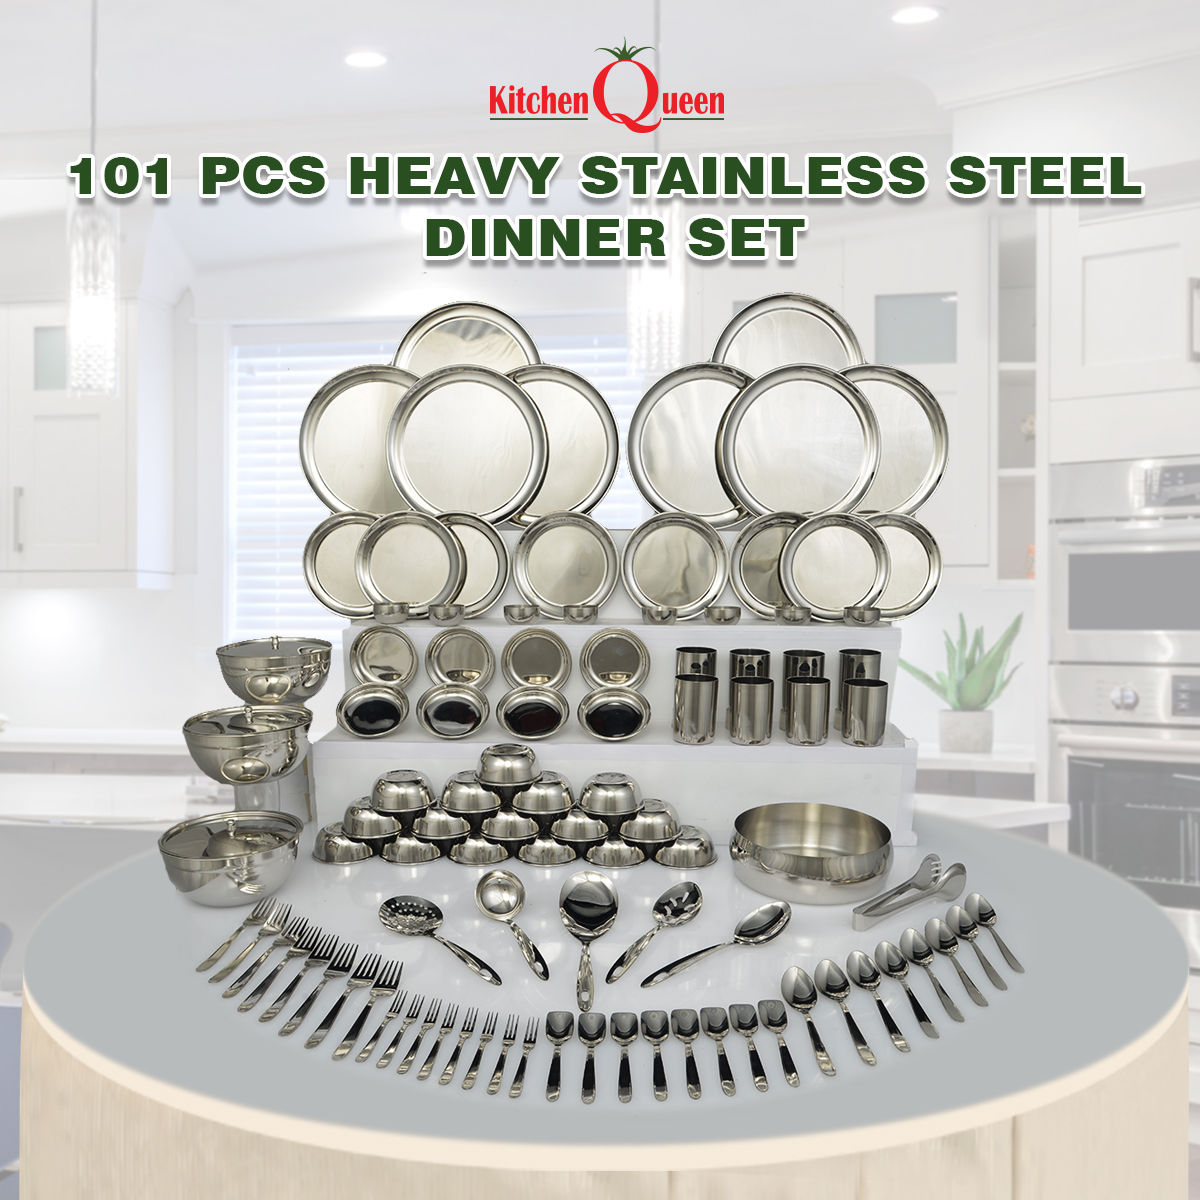 Buy 101 Pcs Heavy Stainless Steel Dinner Set Online At Best Price In